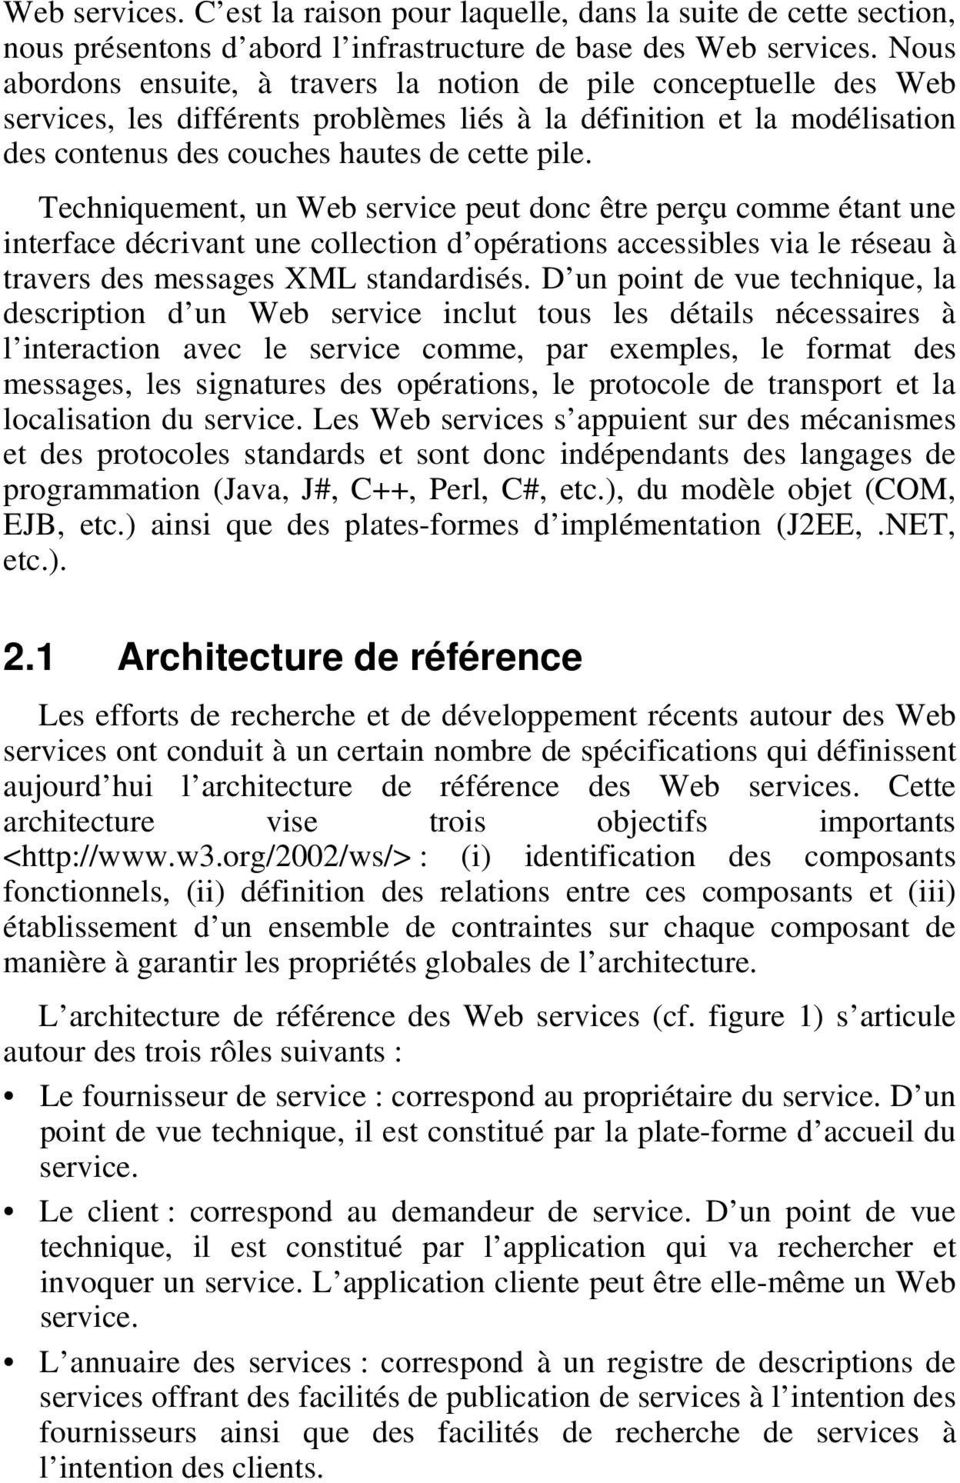 Techniquement, un Web service peut donc être perçu comme étant une interface décrivant une collection d opérations accessibles via le réseau à travers des messages XML standardisés.